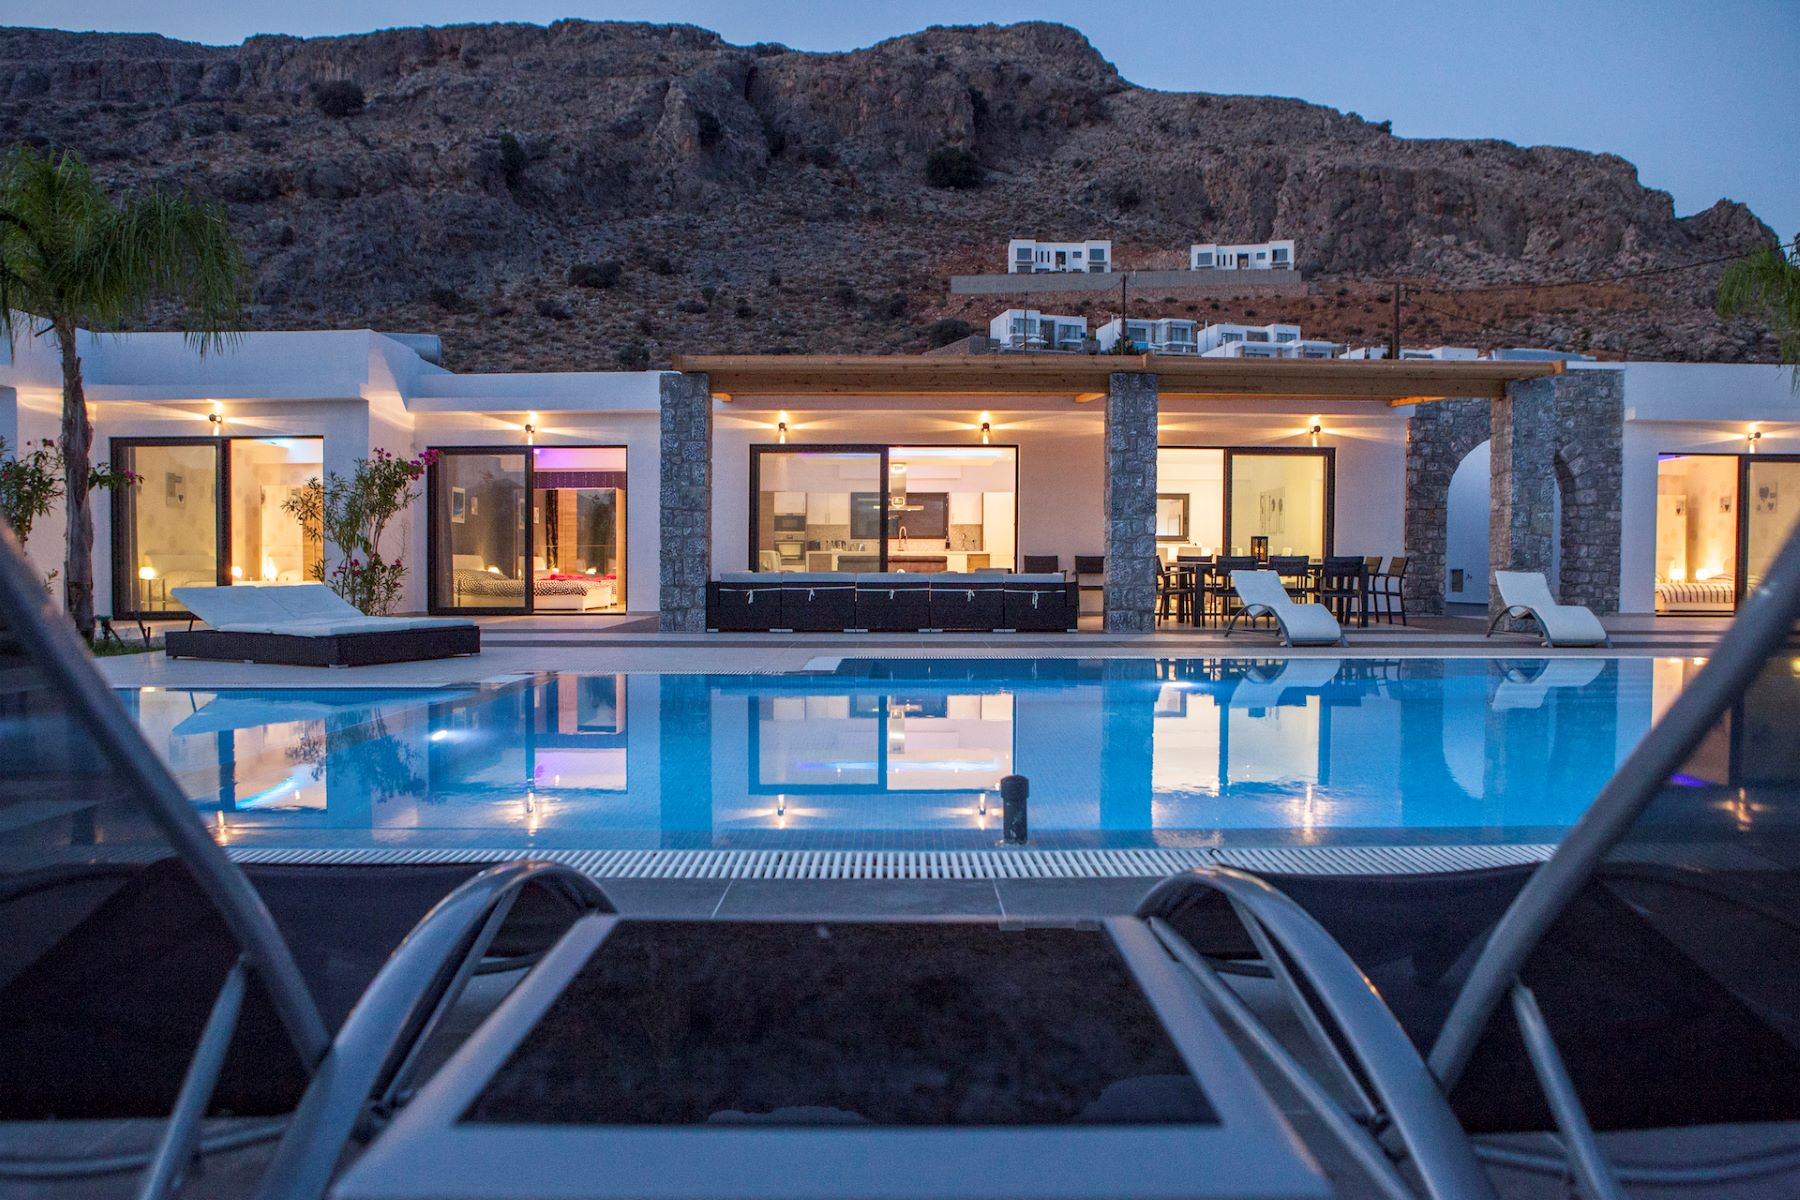 Single Family Home for Sale at Bayview Paradise Psaltos Bayview Paradise Rhodes, Southern Aegean, 85107 Greece